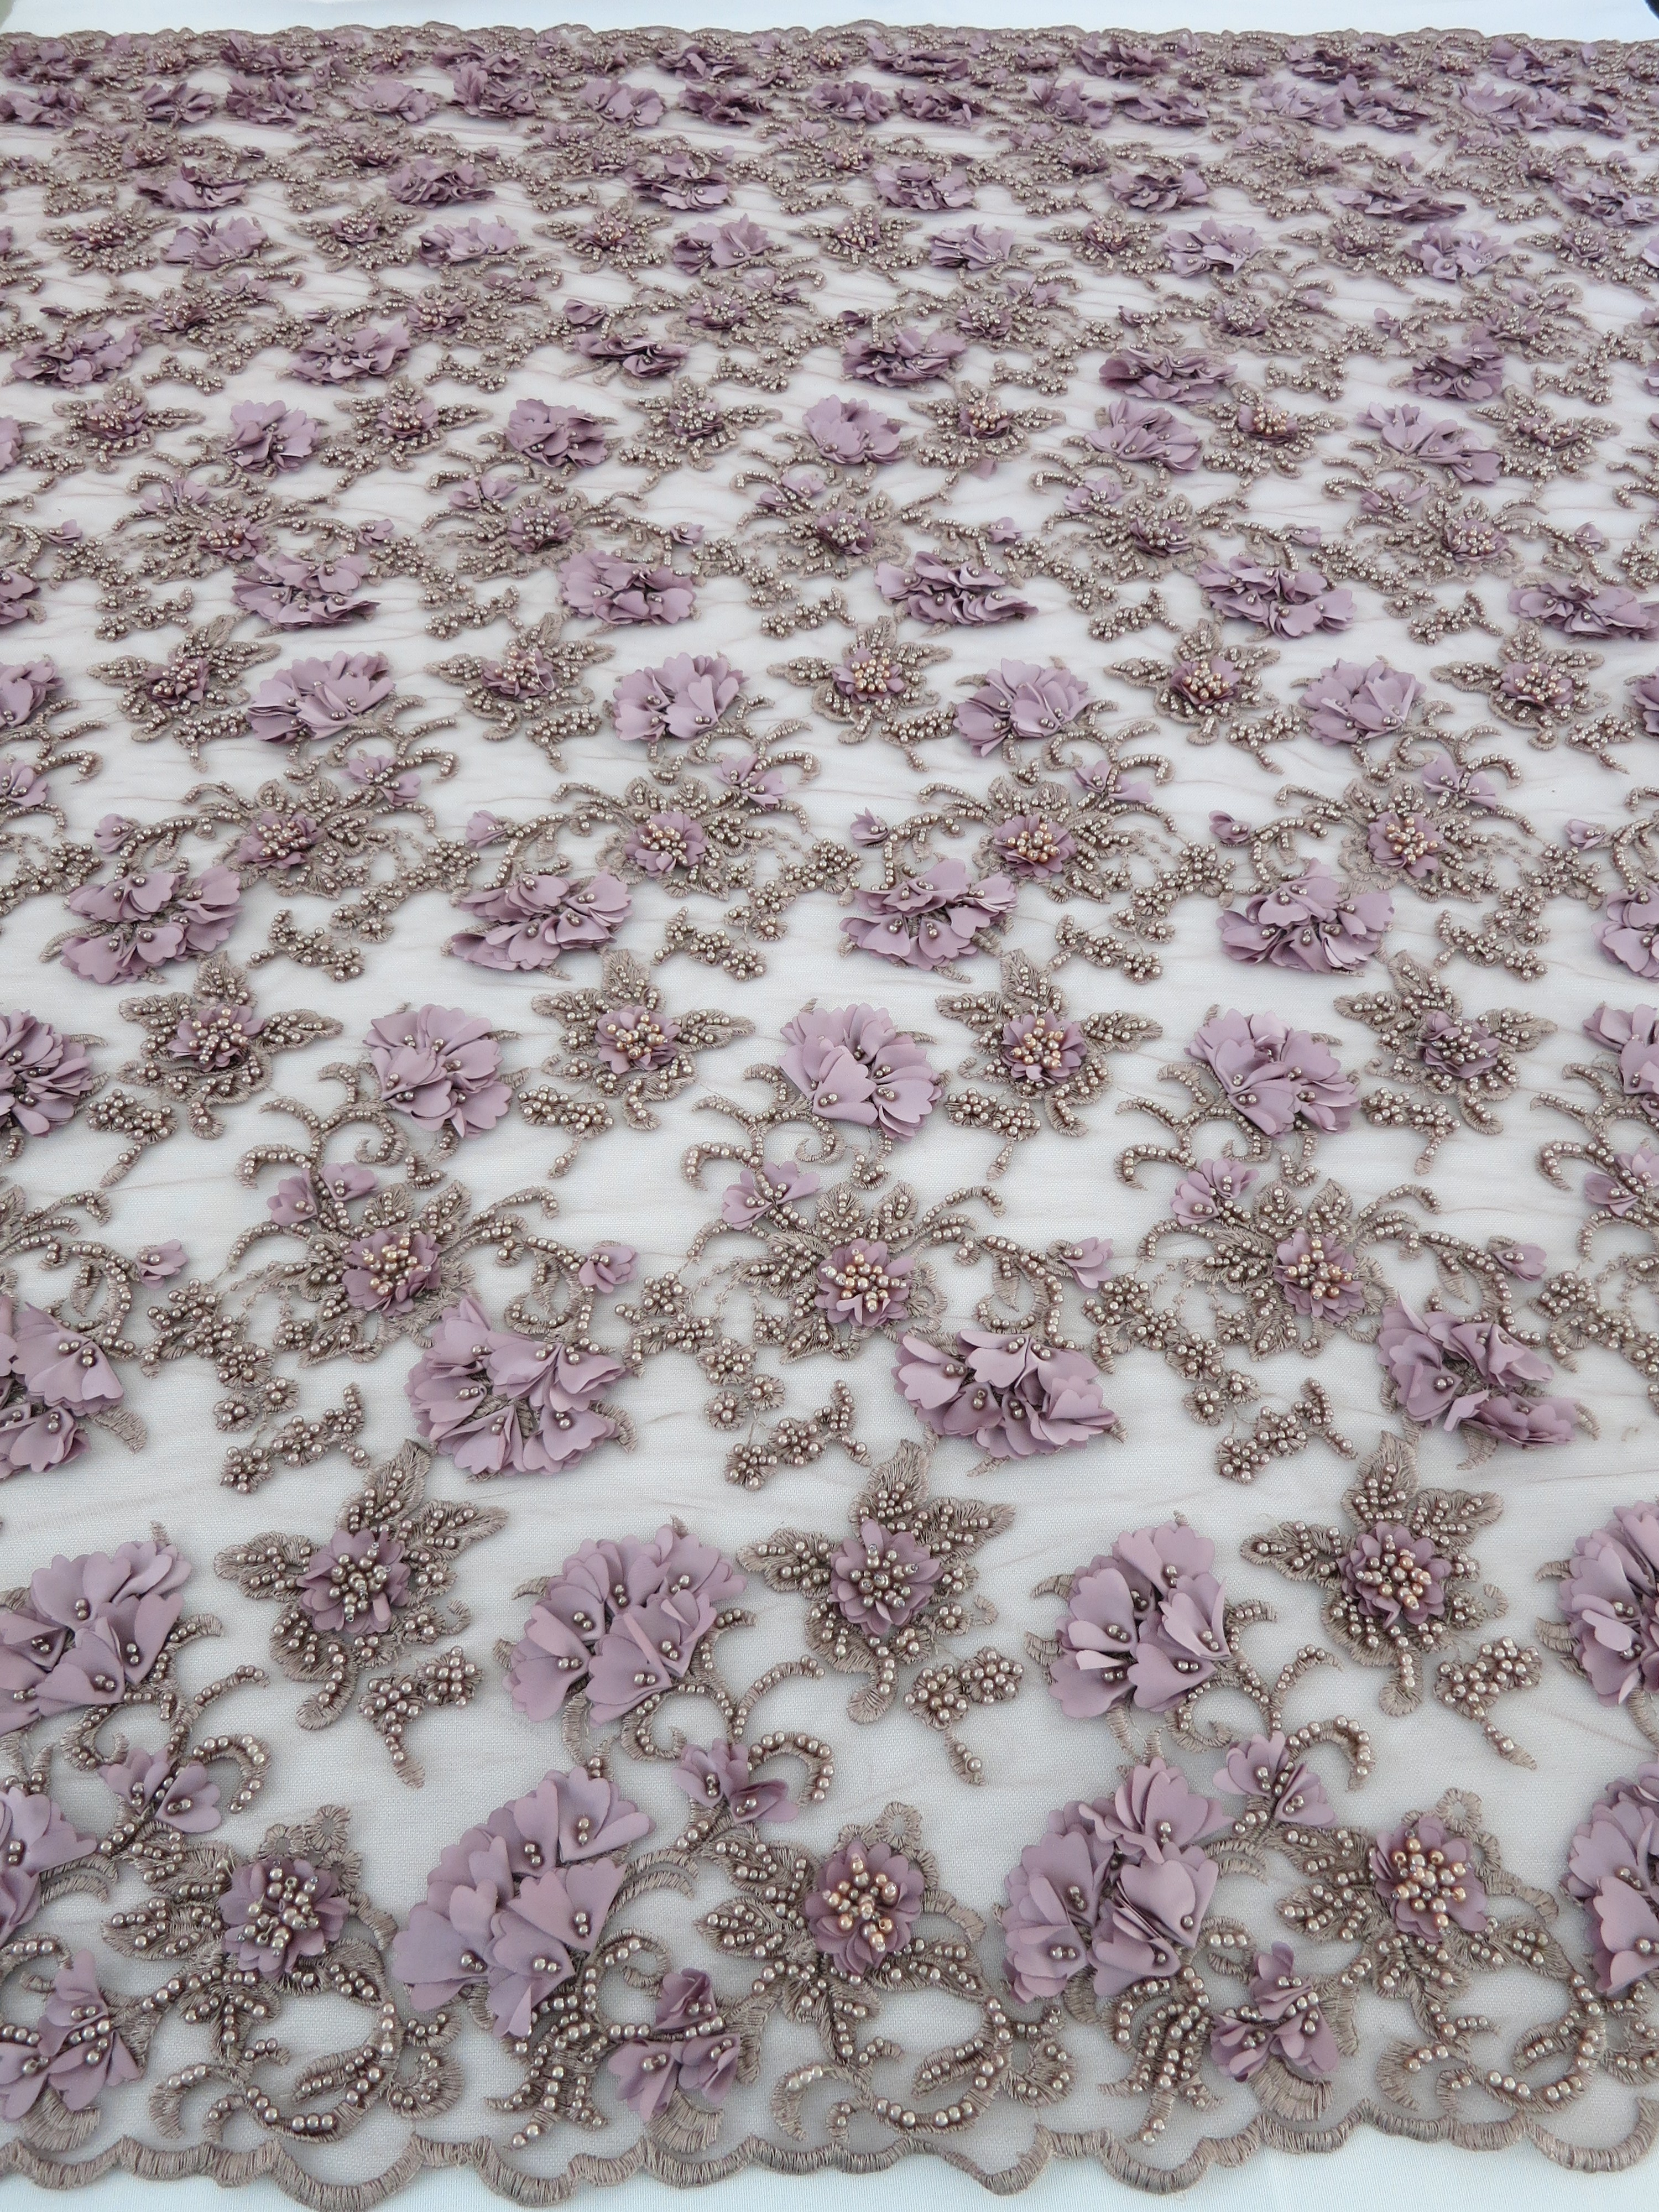 Lilac floral beaded embroidered lace mesh fabric